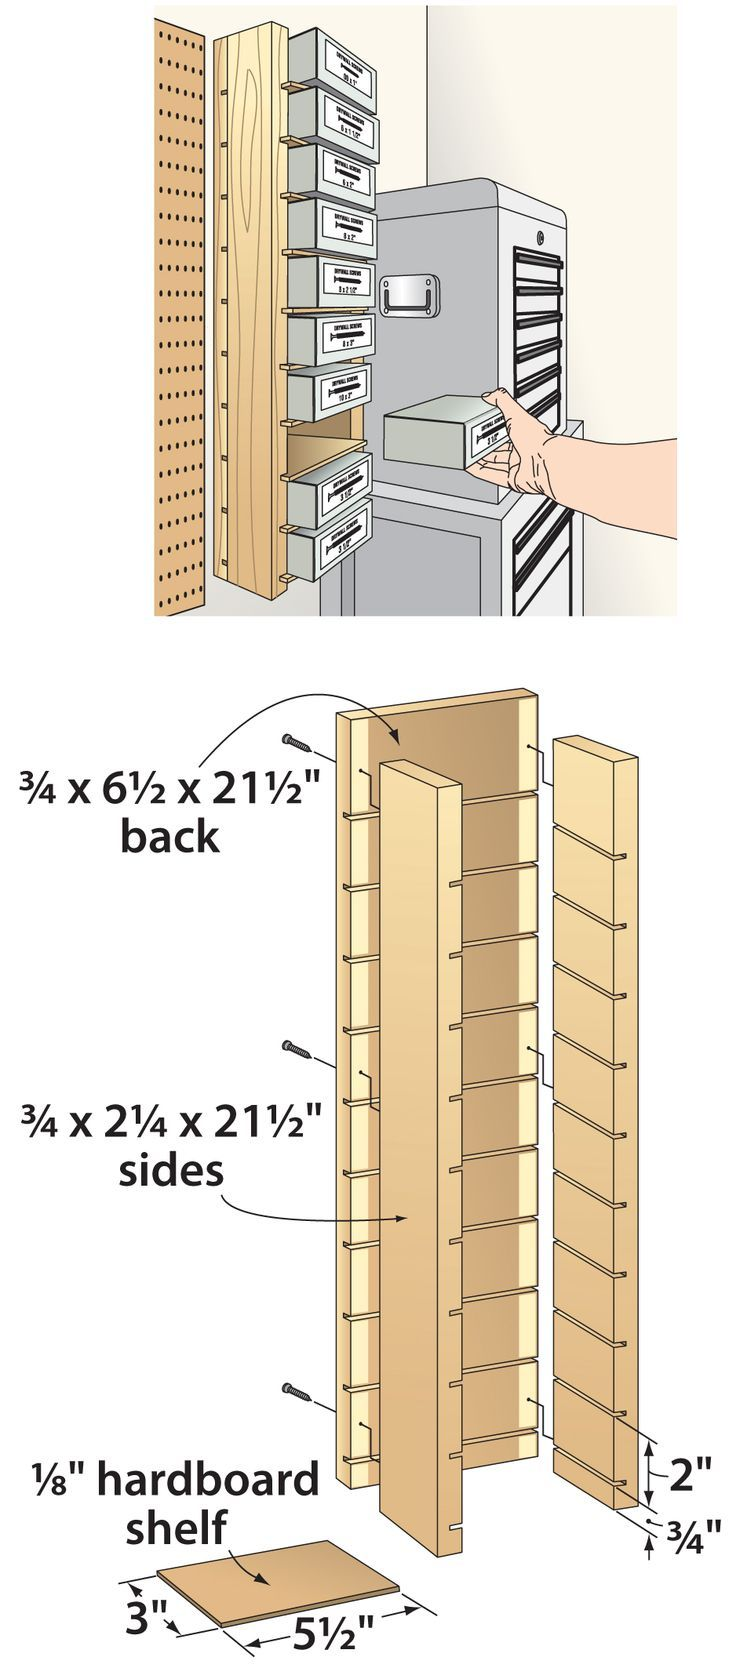 Easy, sturdy storage cabinets for screws. Learn more at the picture More info @ http://tips.woodmagazine.com/jigs-stands-organizers/simple-sturdy-storage-shelves-for-screws/